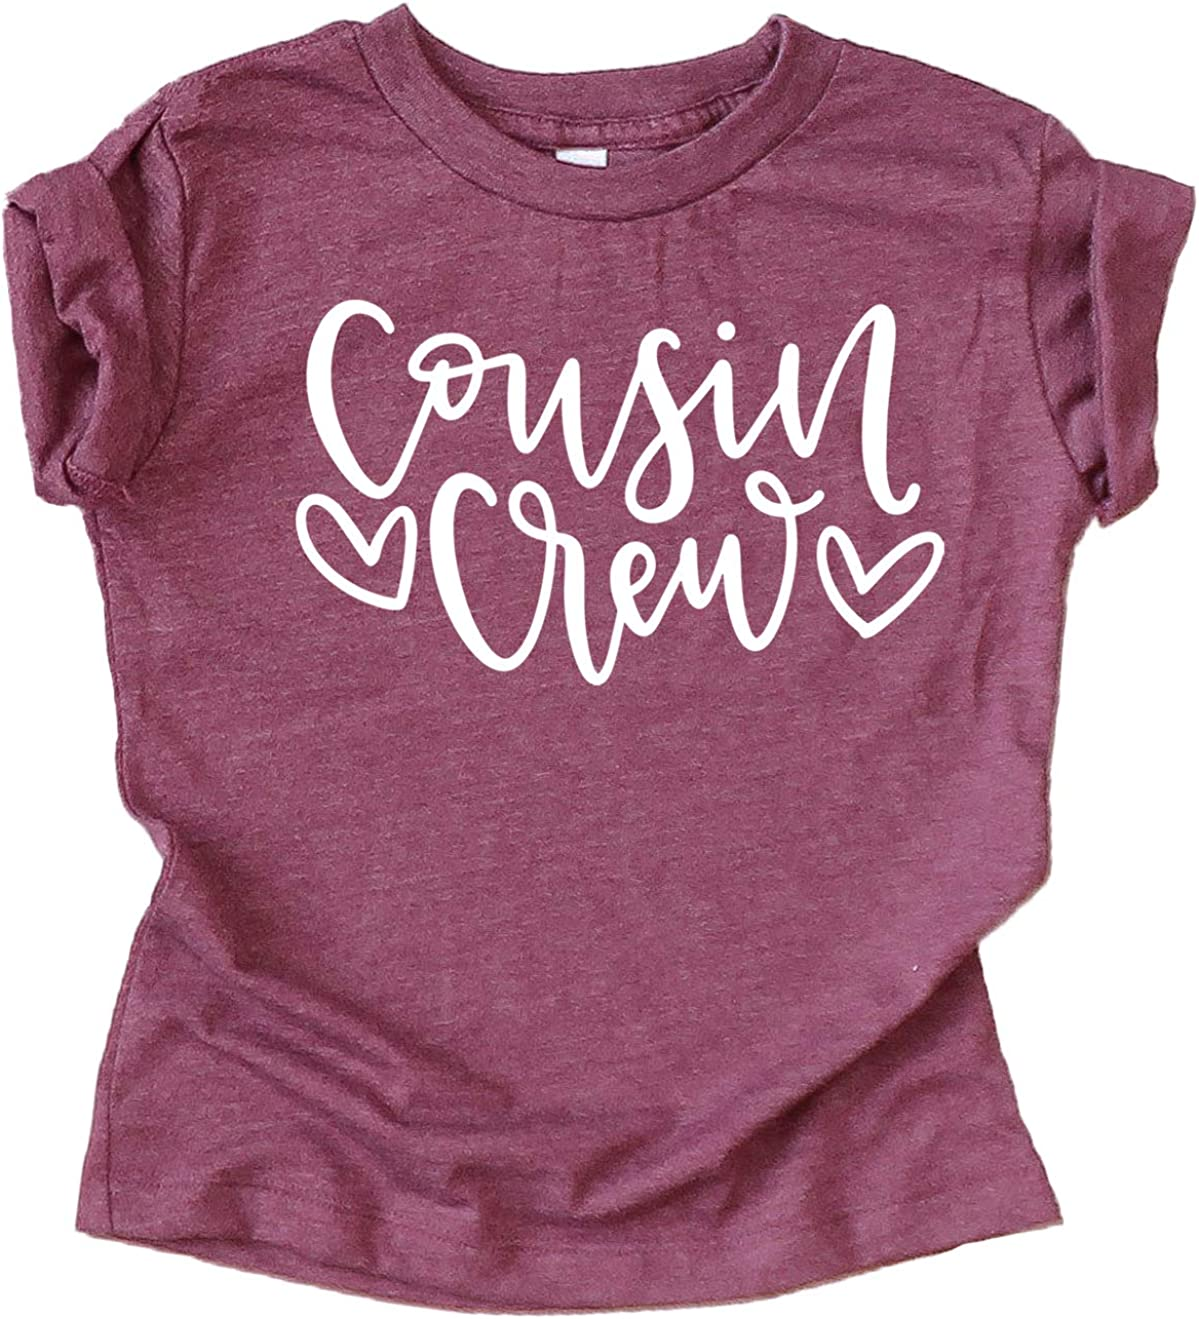 Cousin Heart T-Shirts and Bodysuits for Baby and Toddler Girls Fun Family Outfits